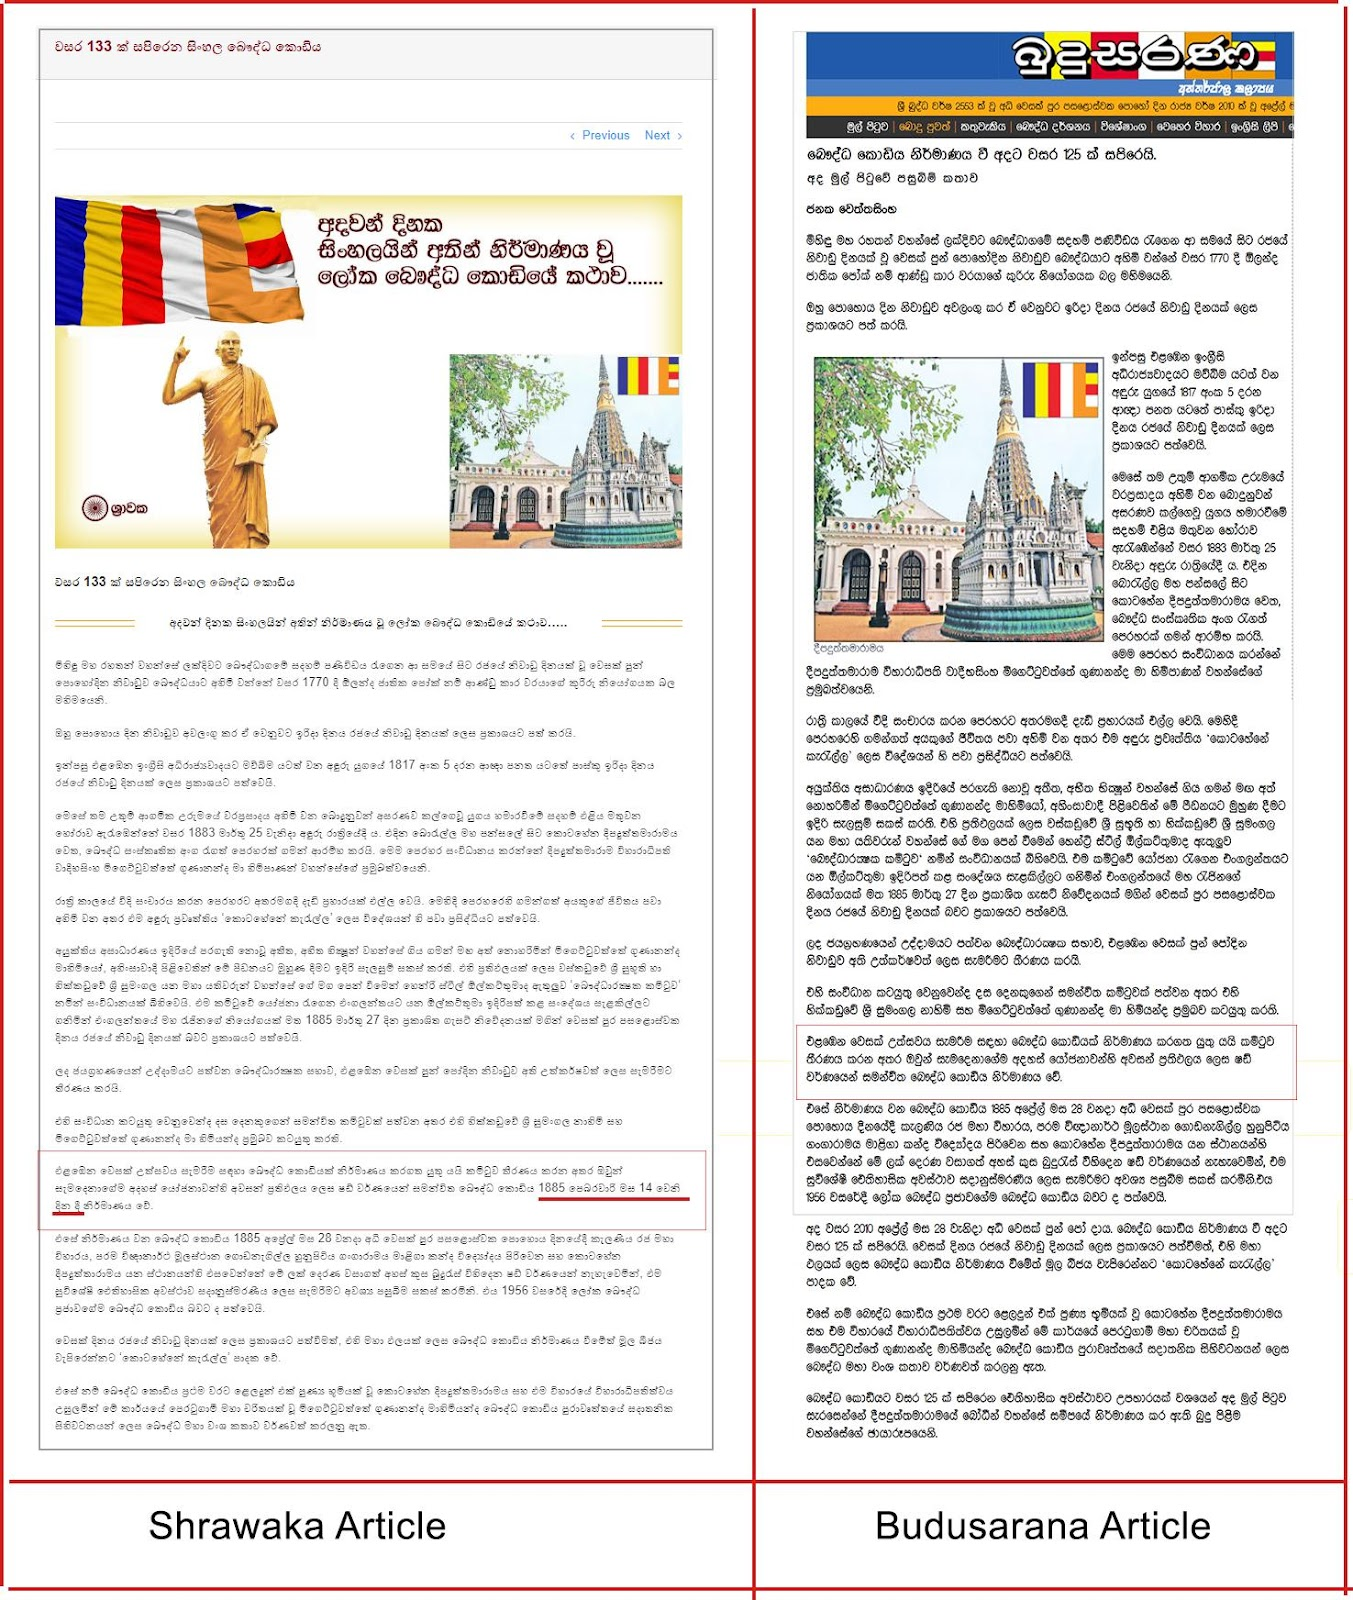 D:\AAA -Fact Checking\Completed\AAA-Publish\Sinhala\2021\Buddhist Flag\comparison-2.jpg